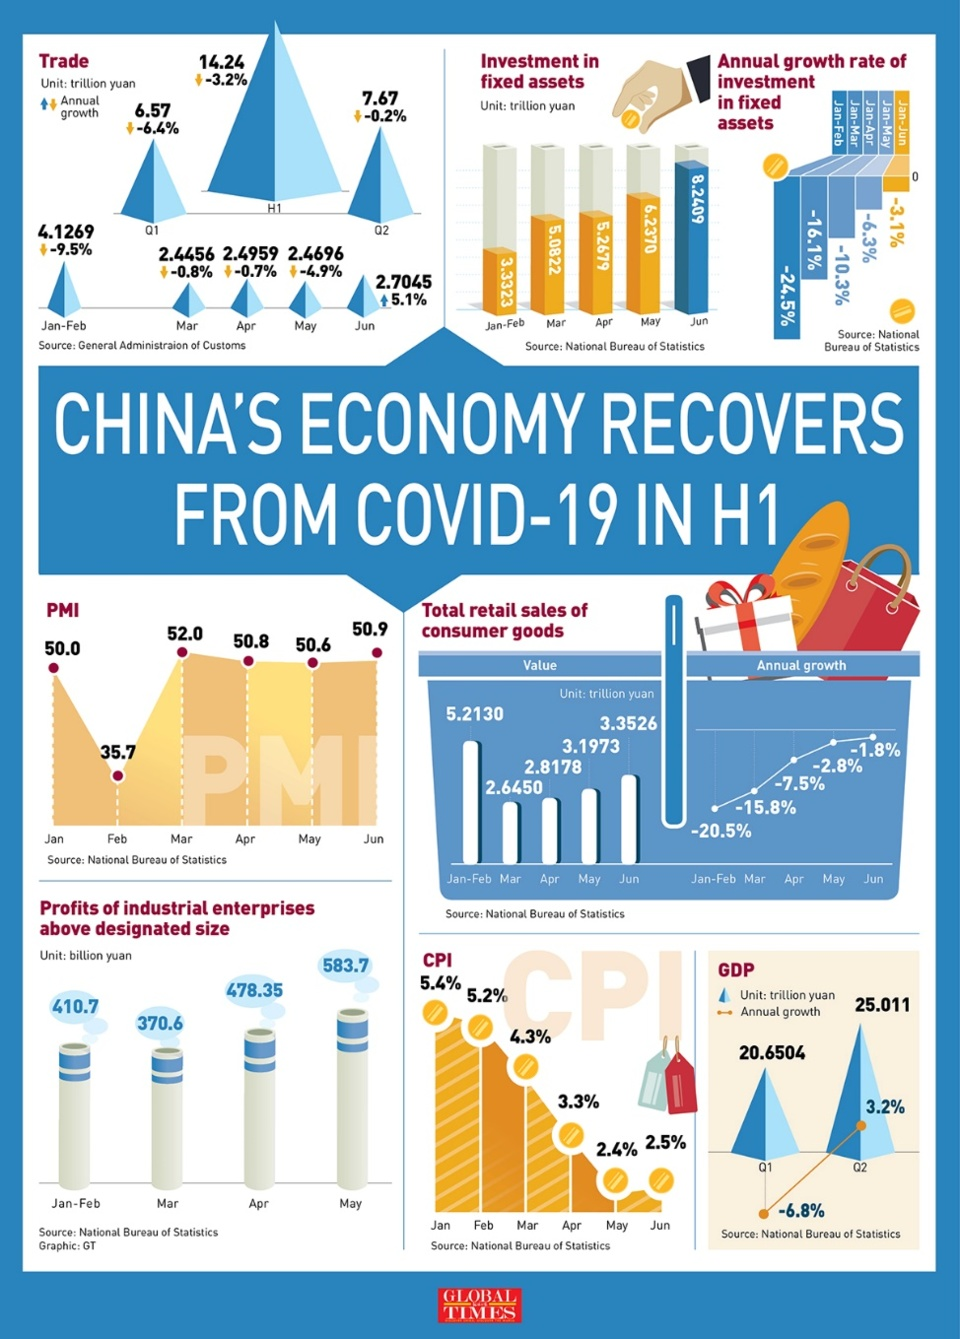 China's GDP up 3.2% in Q2, becomes 1st major economy to return to growth in wake of COVID-19